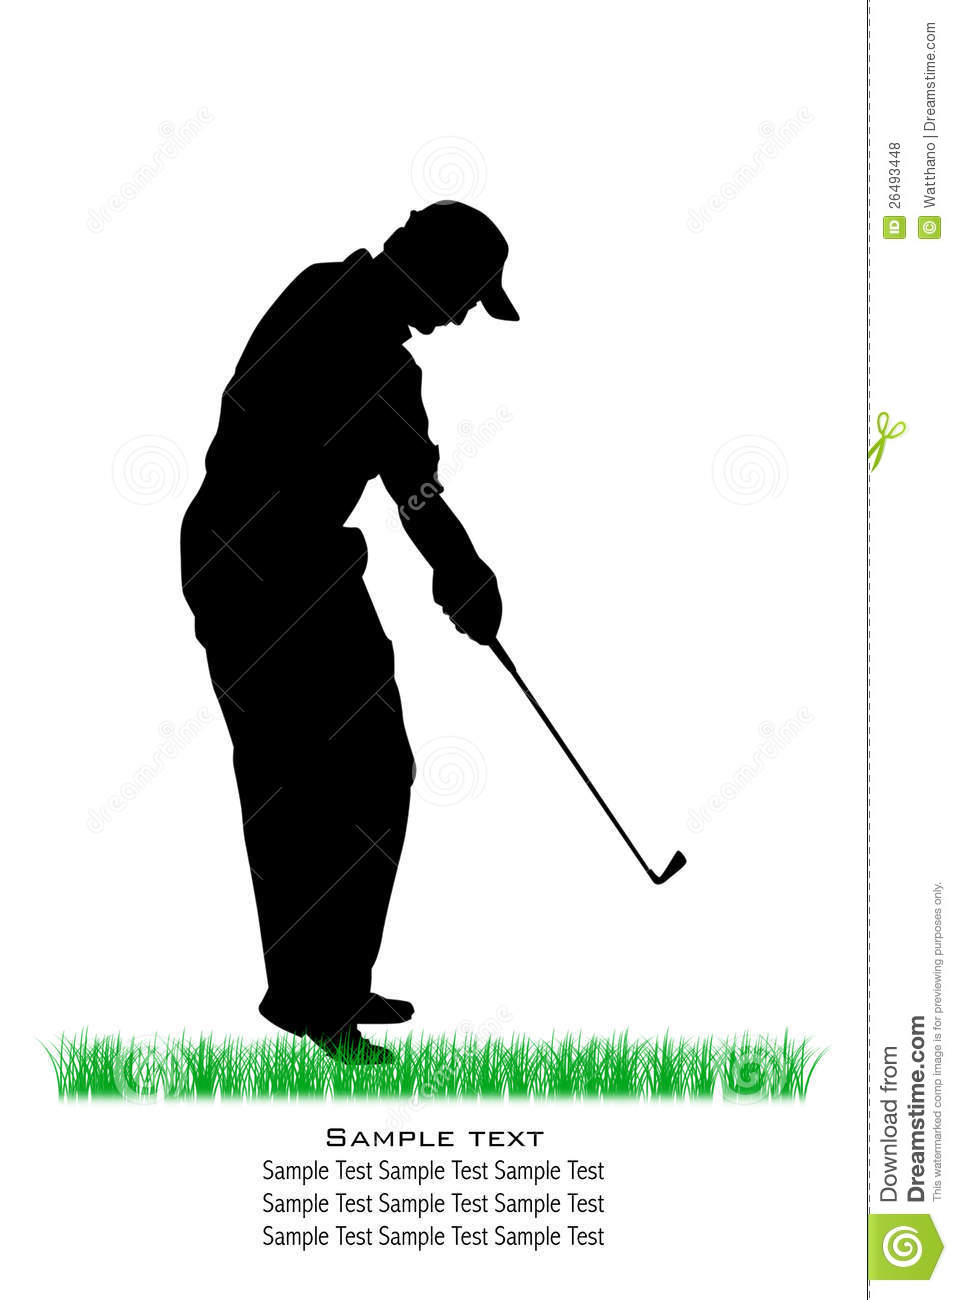 HD wallpapers golf silhouette vector